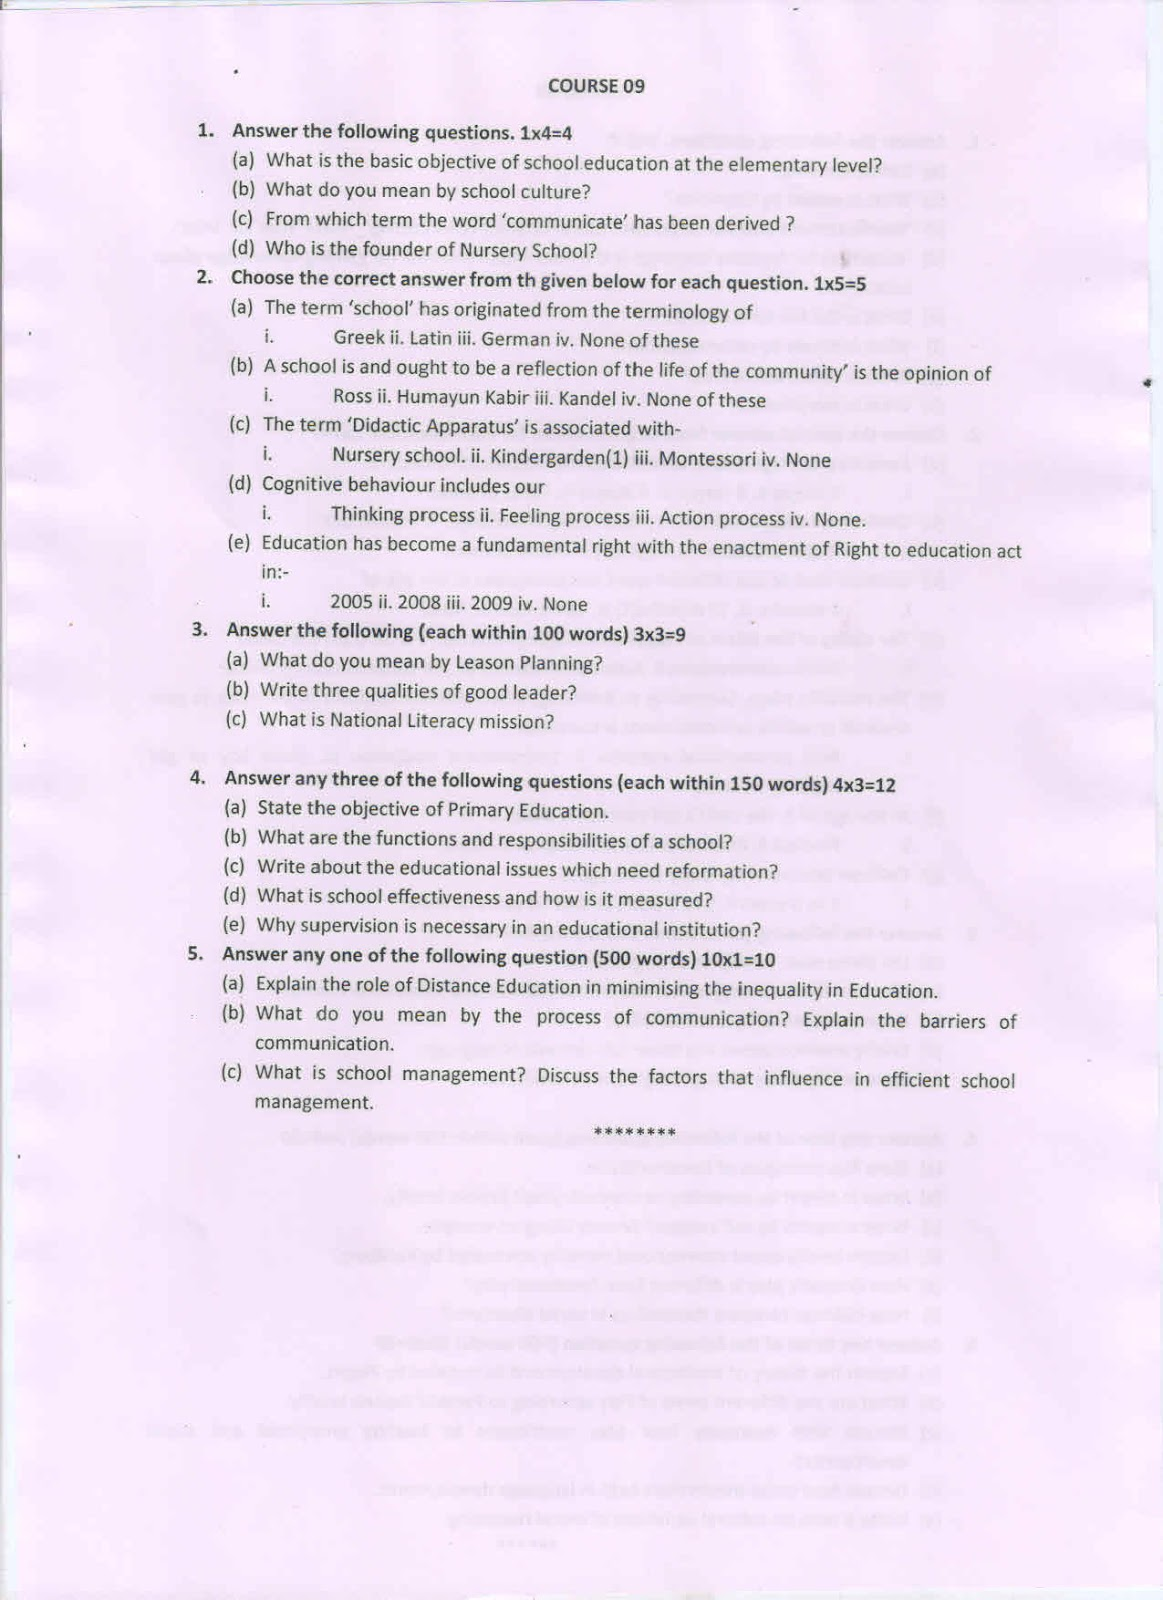 Central library janata college kabuganj old question paper 2014 old question paper 2014 for deled 2nd year examination malvernweather Images